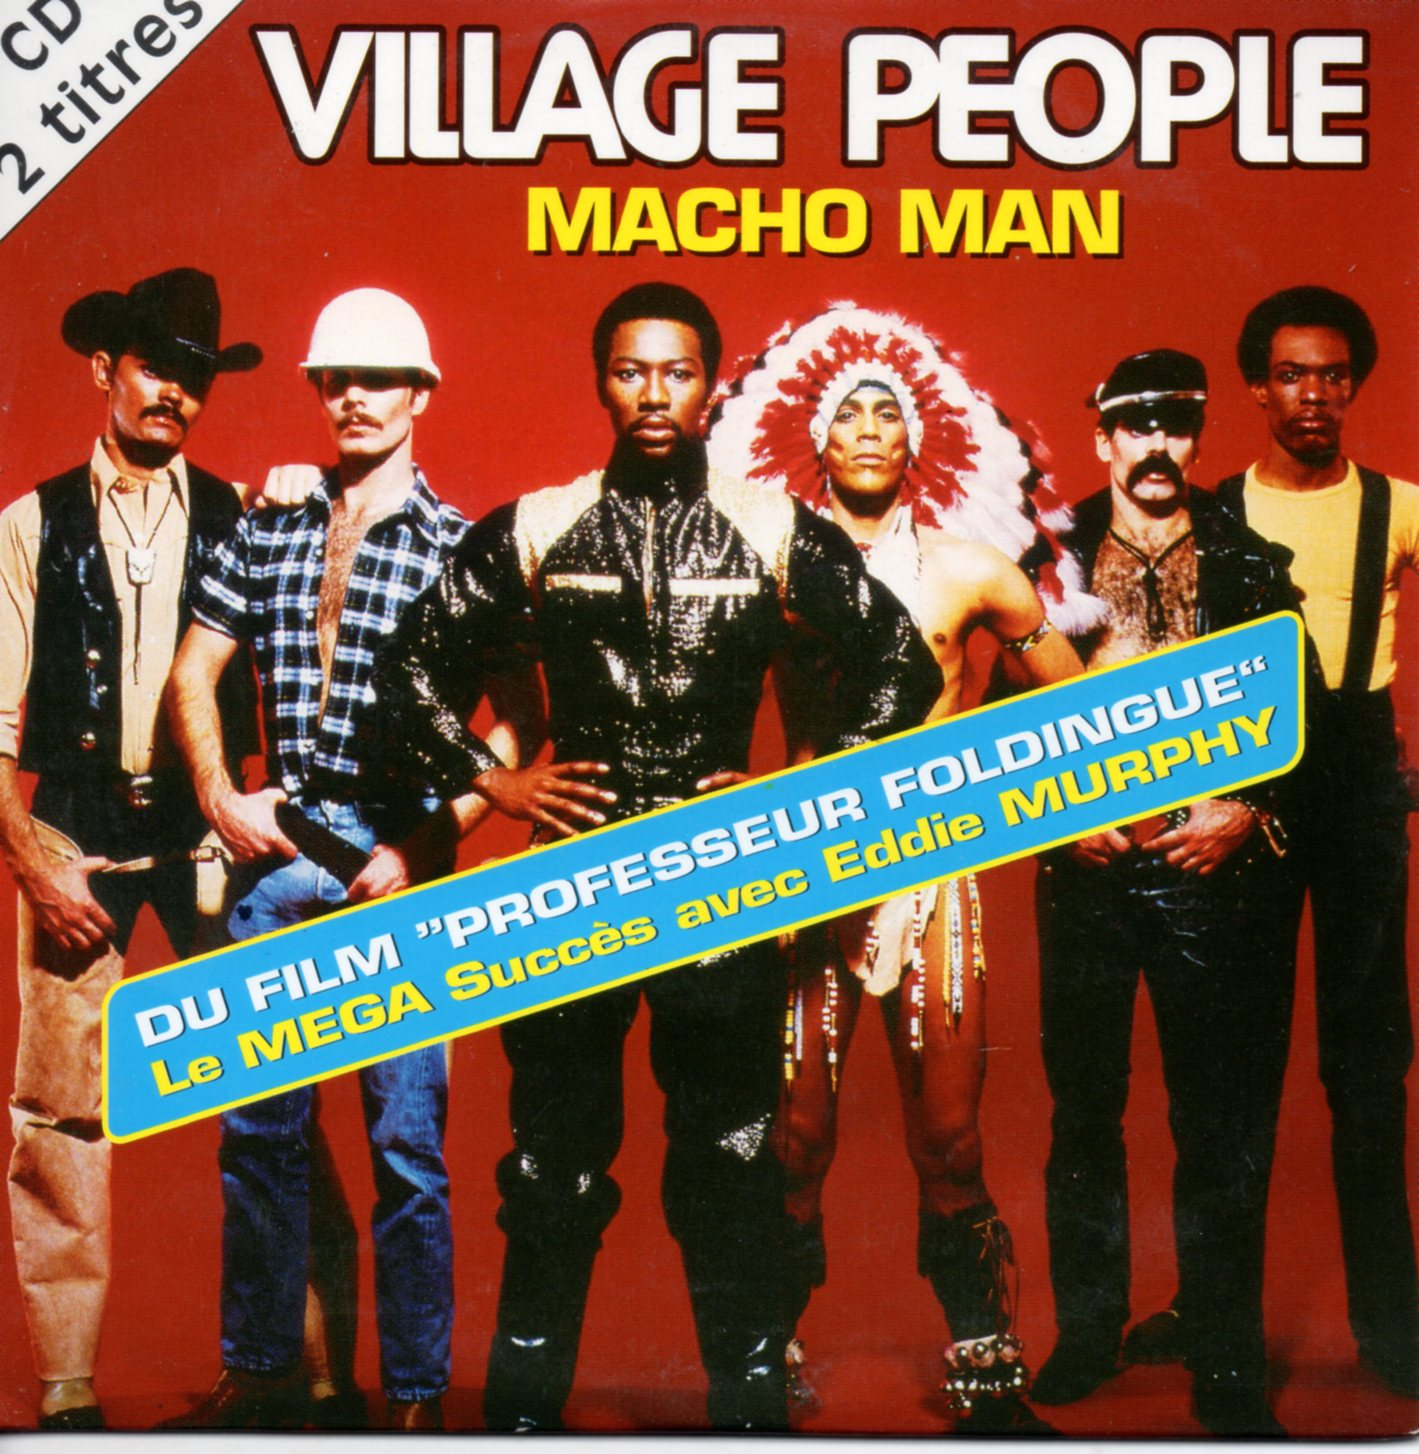 VILLAGE PEOPLE - Macho Man 3:30/key West 3:07